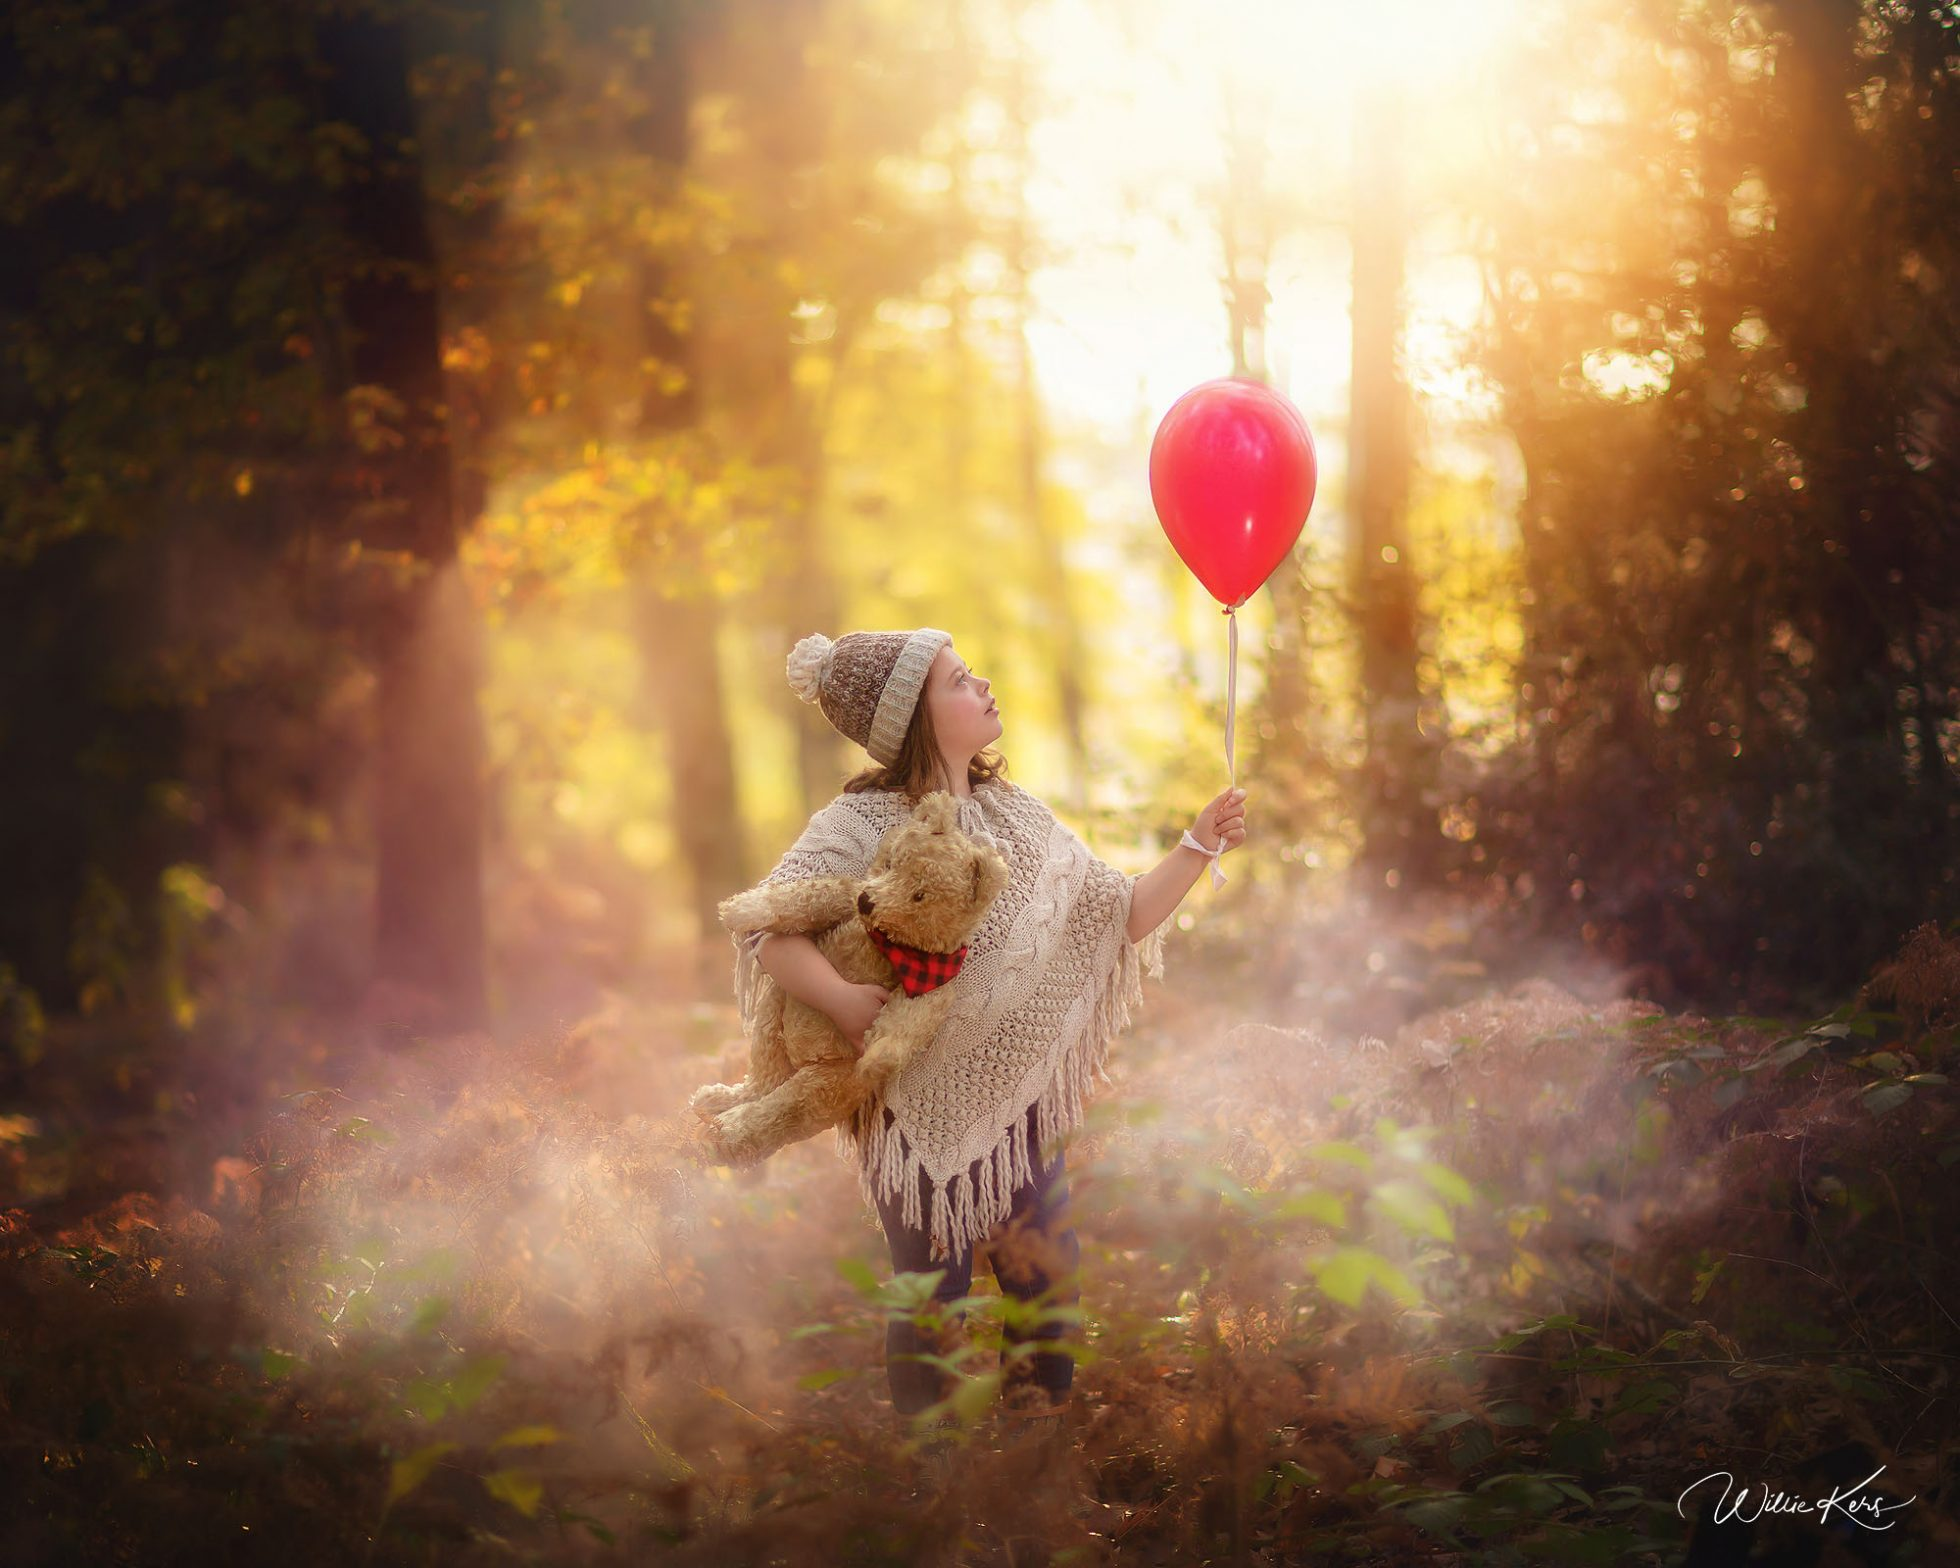 Canon 5d mark III childhood image of a girl with a red balloon with Winnie the pooh bear in her hands standing in an autumn forest during sunset by Willie Kers